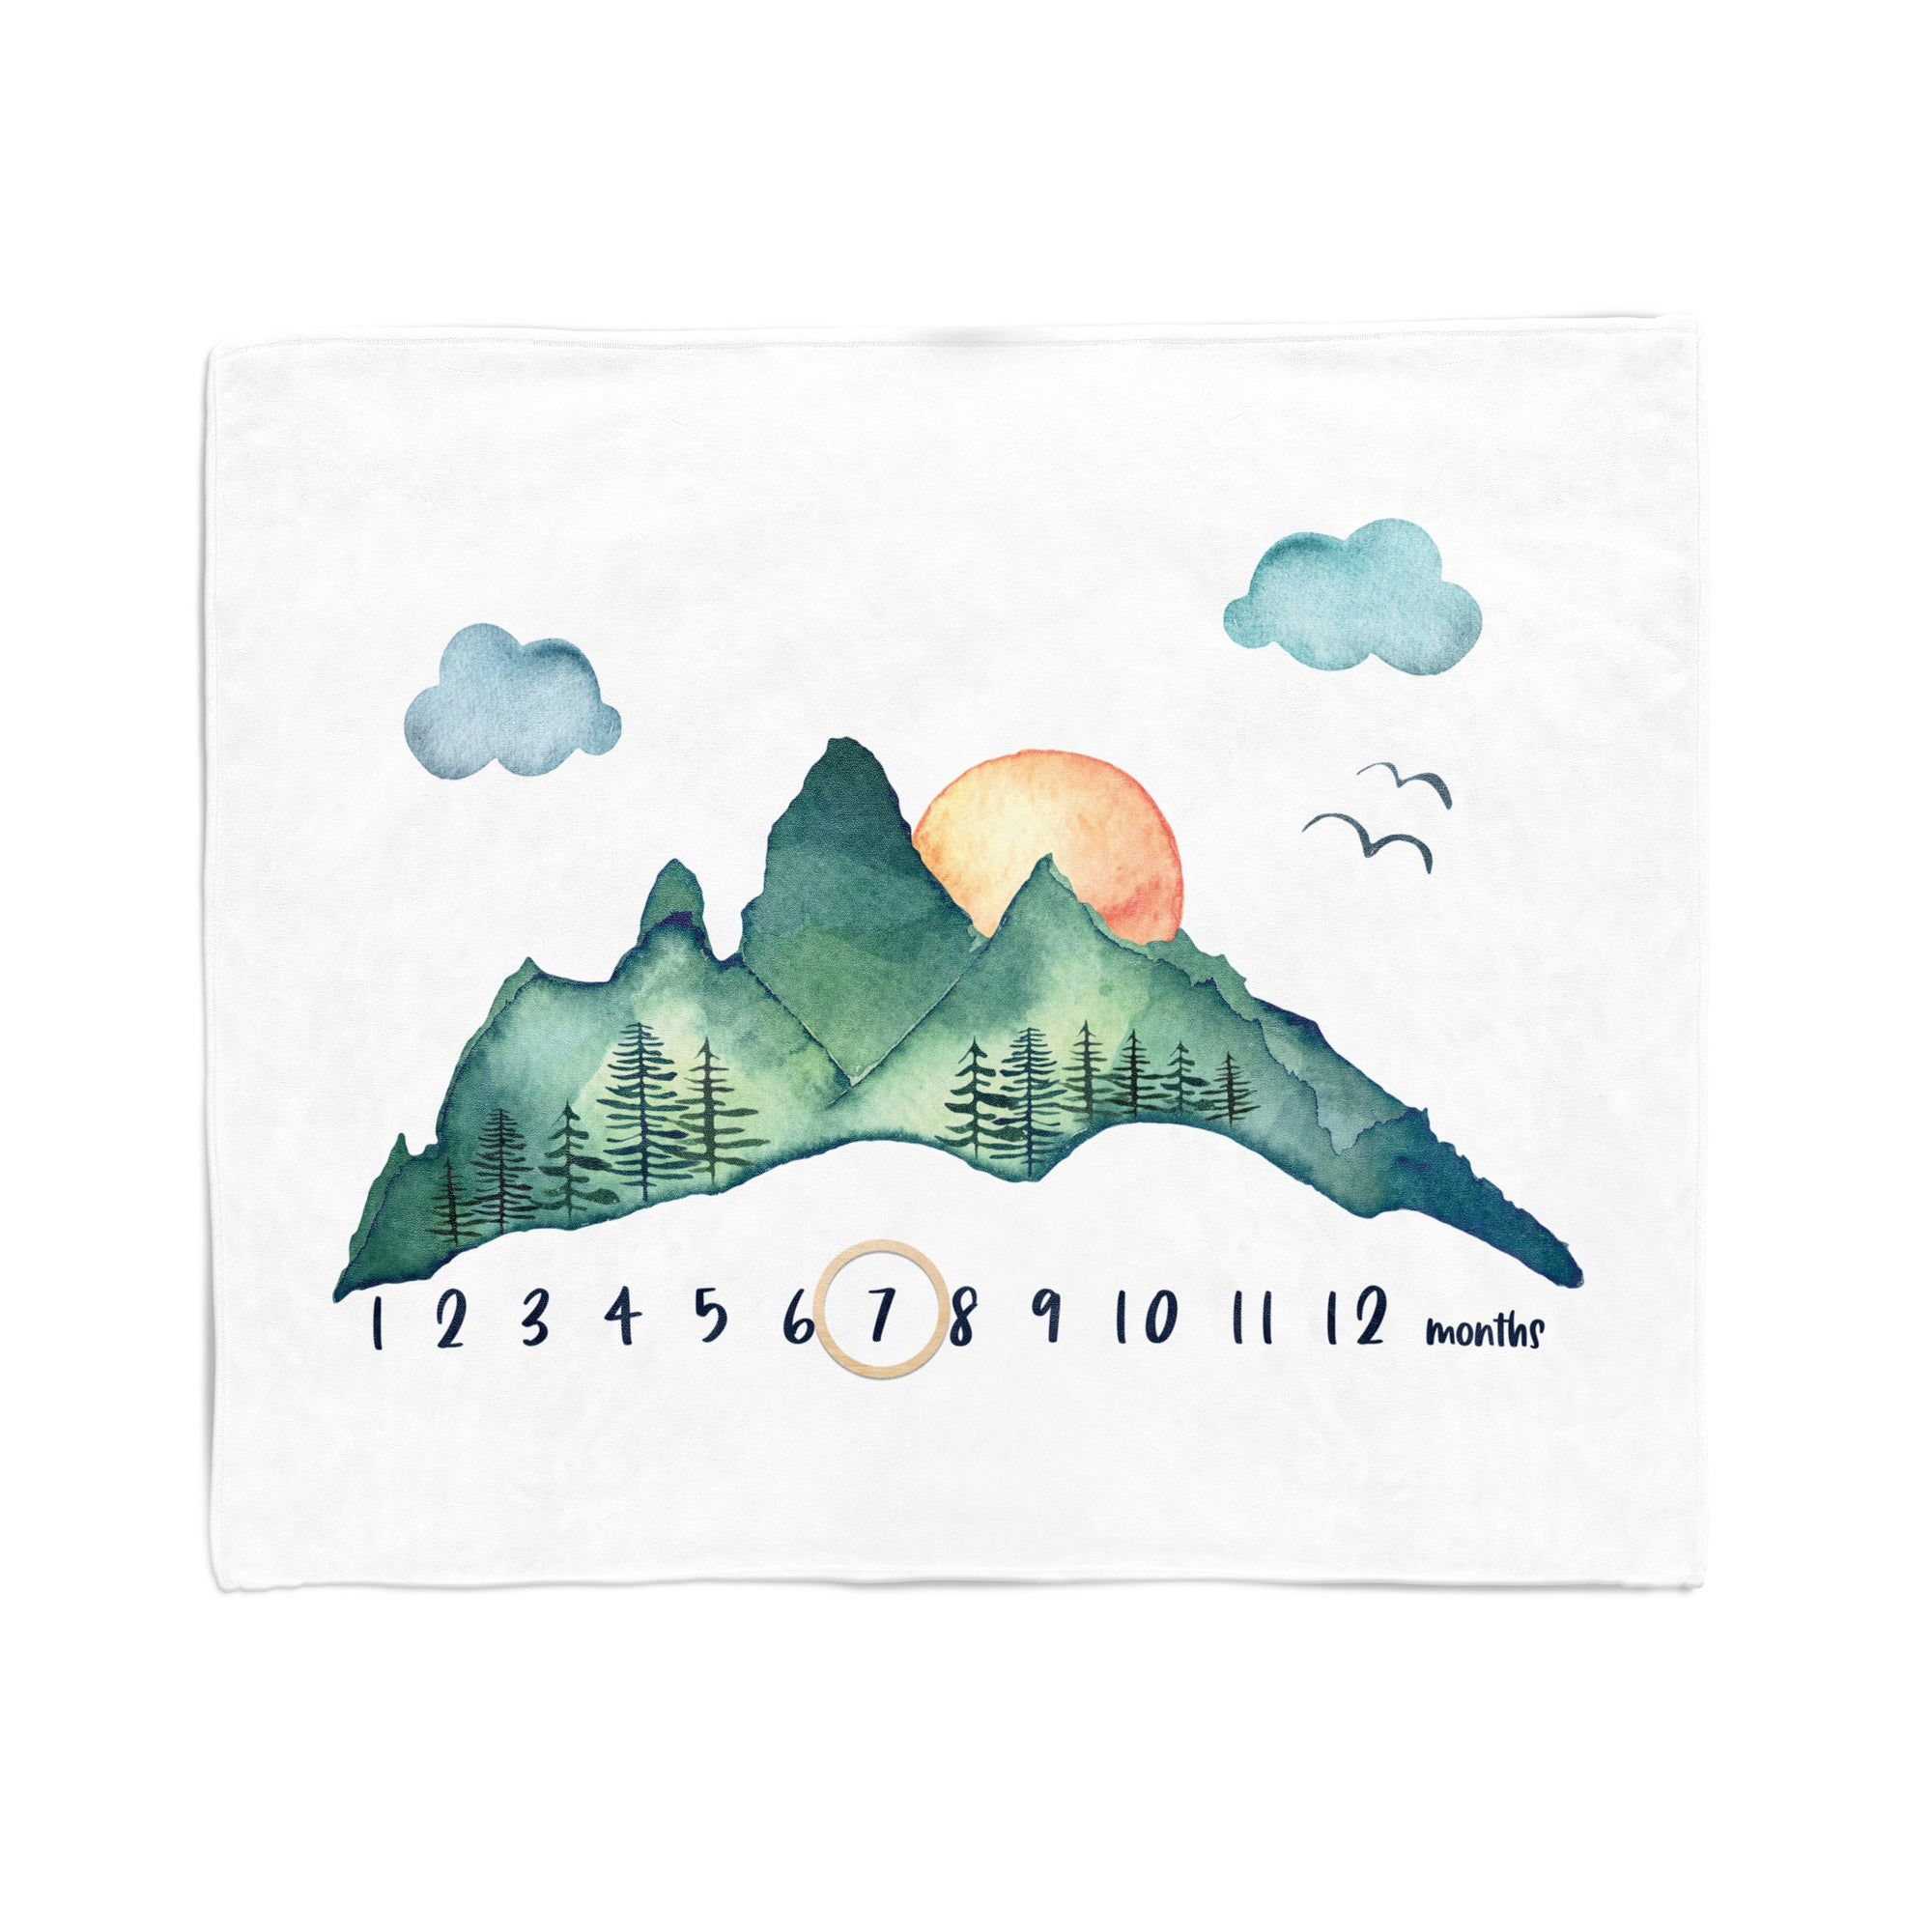 Baby Milestone Blanket, Watercolor Mountains, Personalized Minky Blanket